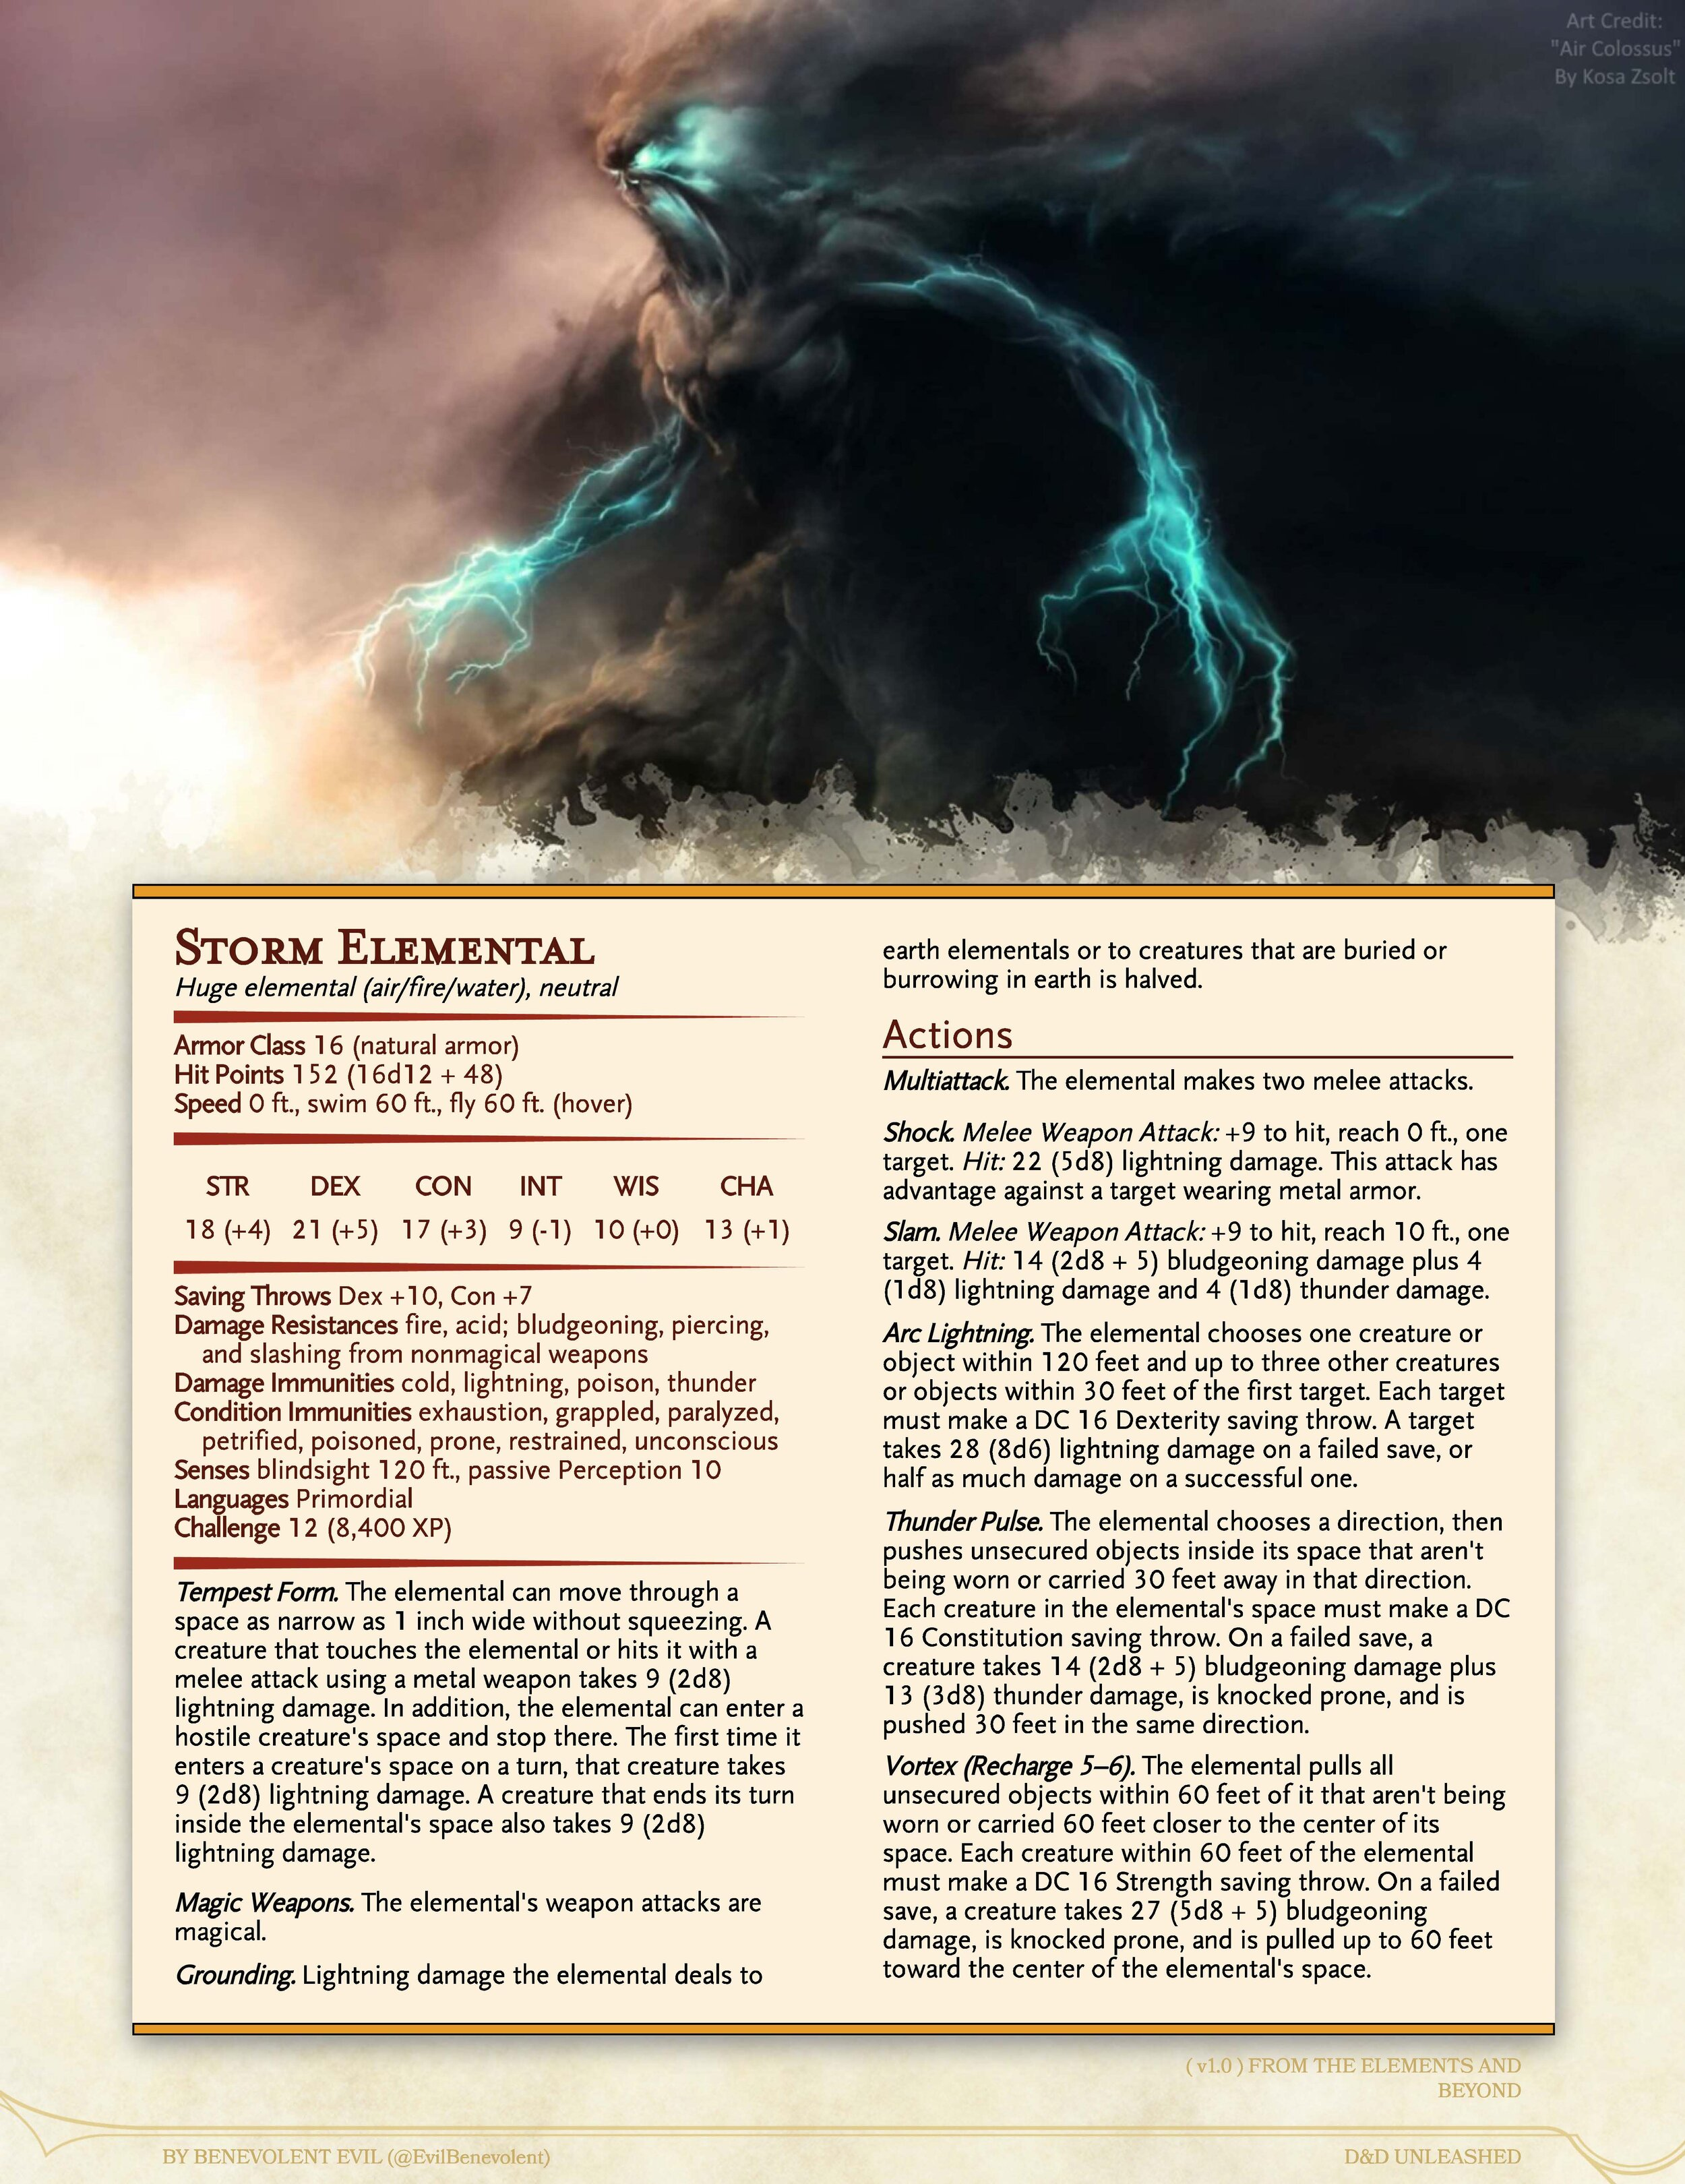 New Monster Magma Elemental Dnd Unleashed A Homebrew Expansion For 5th Edition Dungeons And Dragons